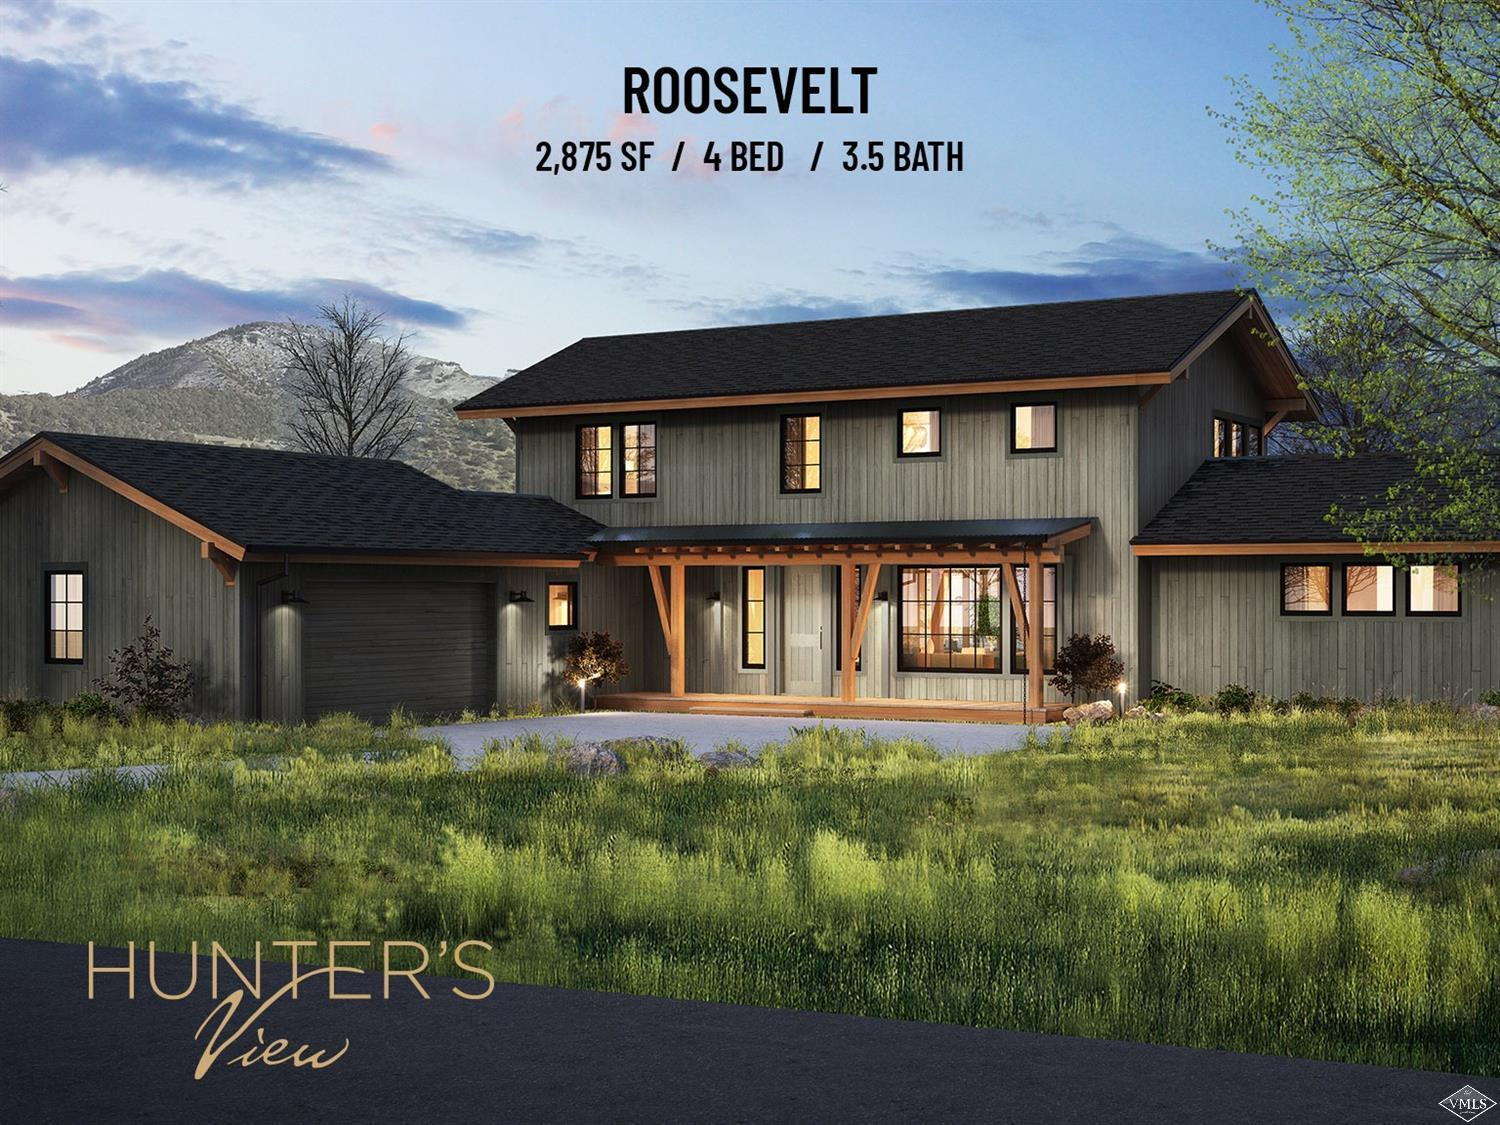 Started in Summer  of 2020 - Roosevelt Models - Hunter's View Residences - Nestled on 81 acres, surrounded by pristine wilderness, Hunter's View is Frost Creek's newest real estate offering. Phase 2 (last 29 homes out of 44) are thoughtfully designed new construction homes, which is perfect combination of personalization and convenience. With 3 unique layouts and numerous additions to choose from, no two residences will be exactly the same.